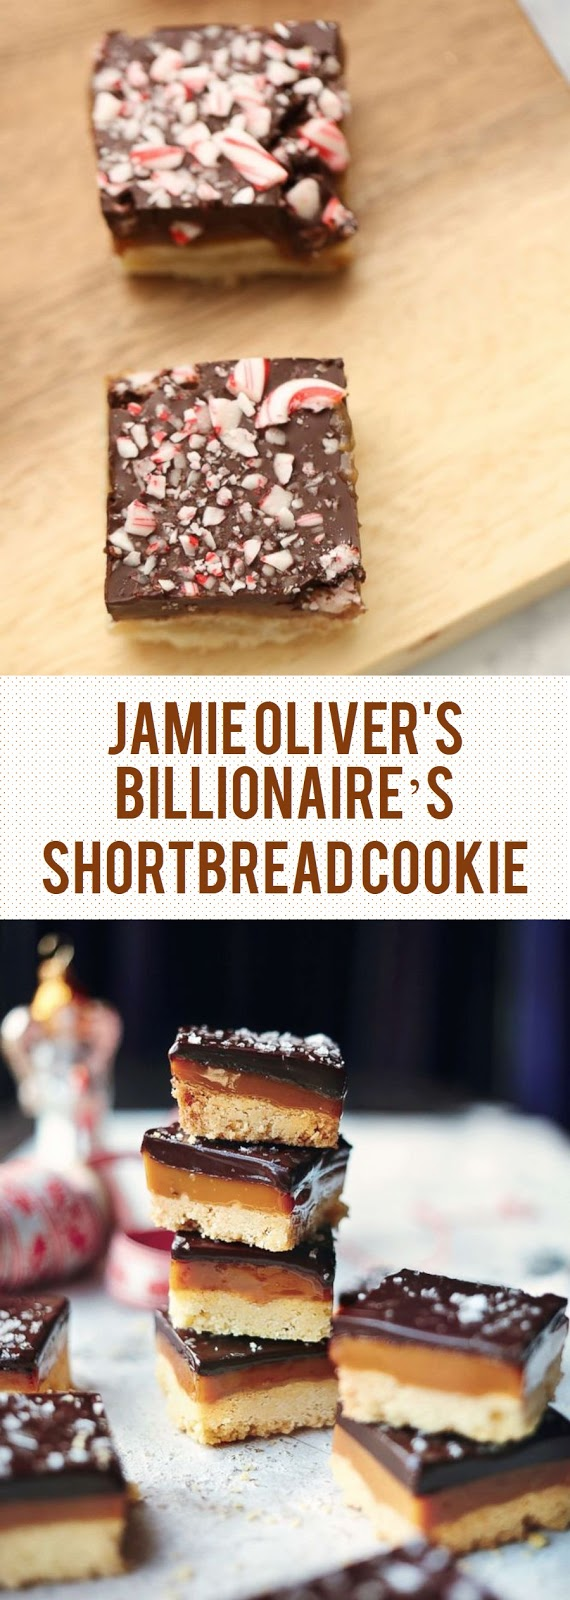 Jamie Oliver's Billionaire's Shortbread Cookie